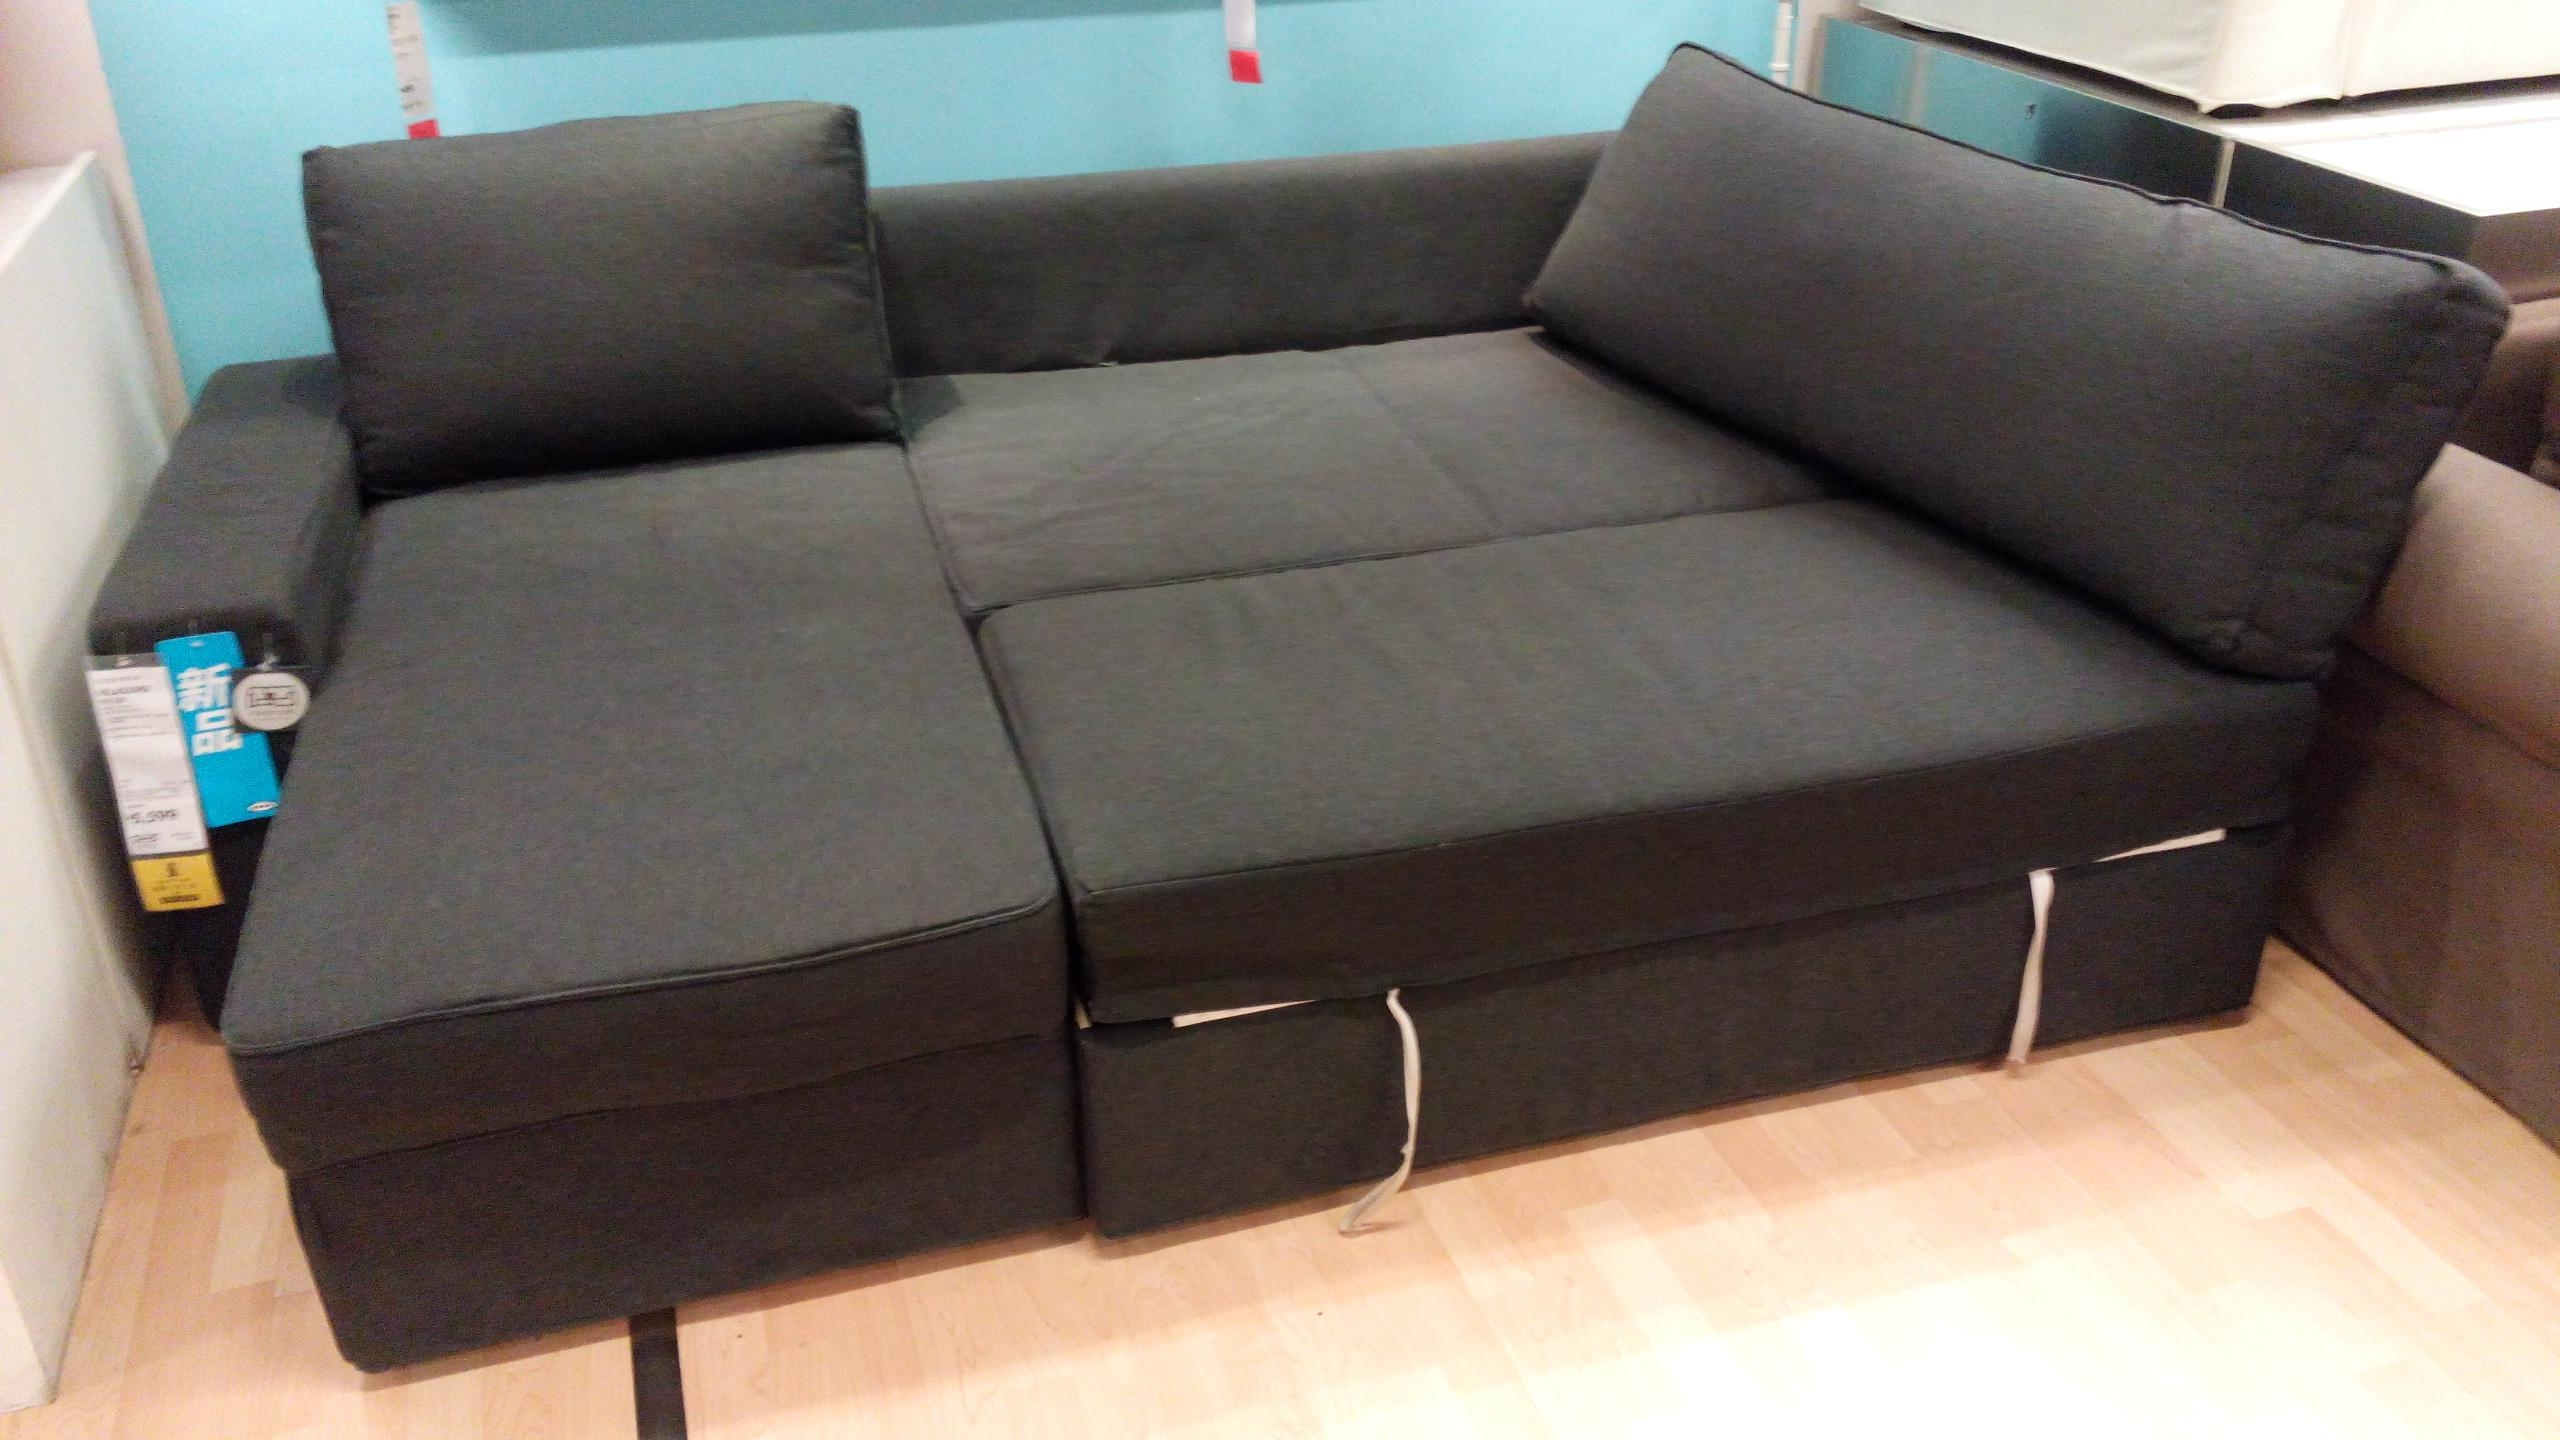 Ikea Vilasund And Backabro Review – Return Of The Sofa Bed Clones! For Chaise Longue Sofa Beds (Photo 14 of 20)